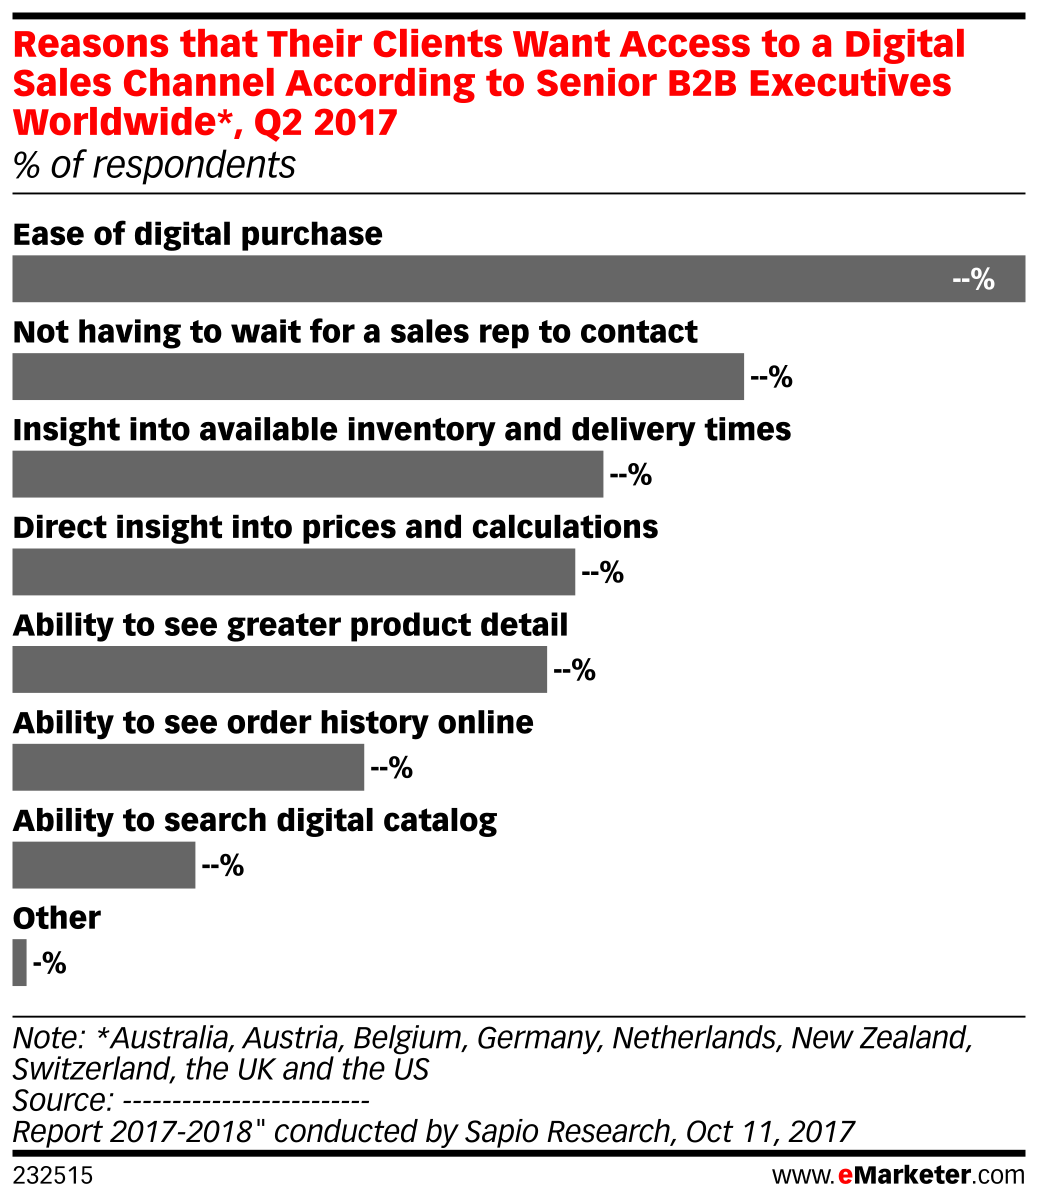 Reasons that Their Clients Want Access to a Digital Sales Channel According to Senior B2B Executives Worldwide*, Q2 2017 (% of respondents)